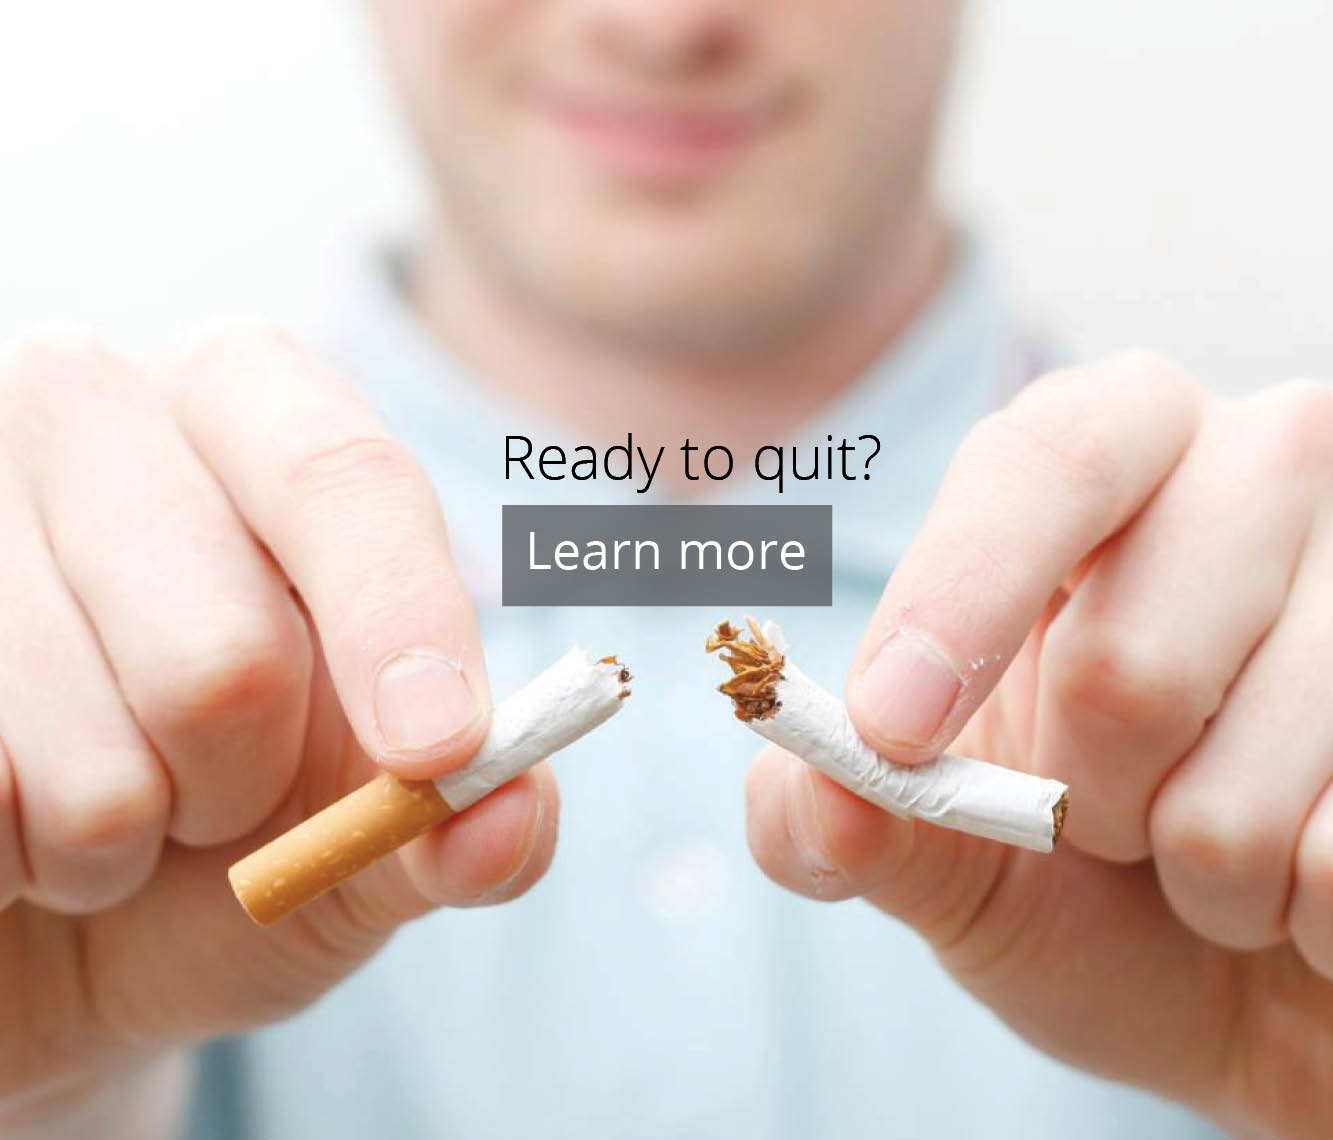 Ready to quit?